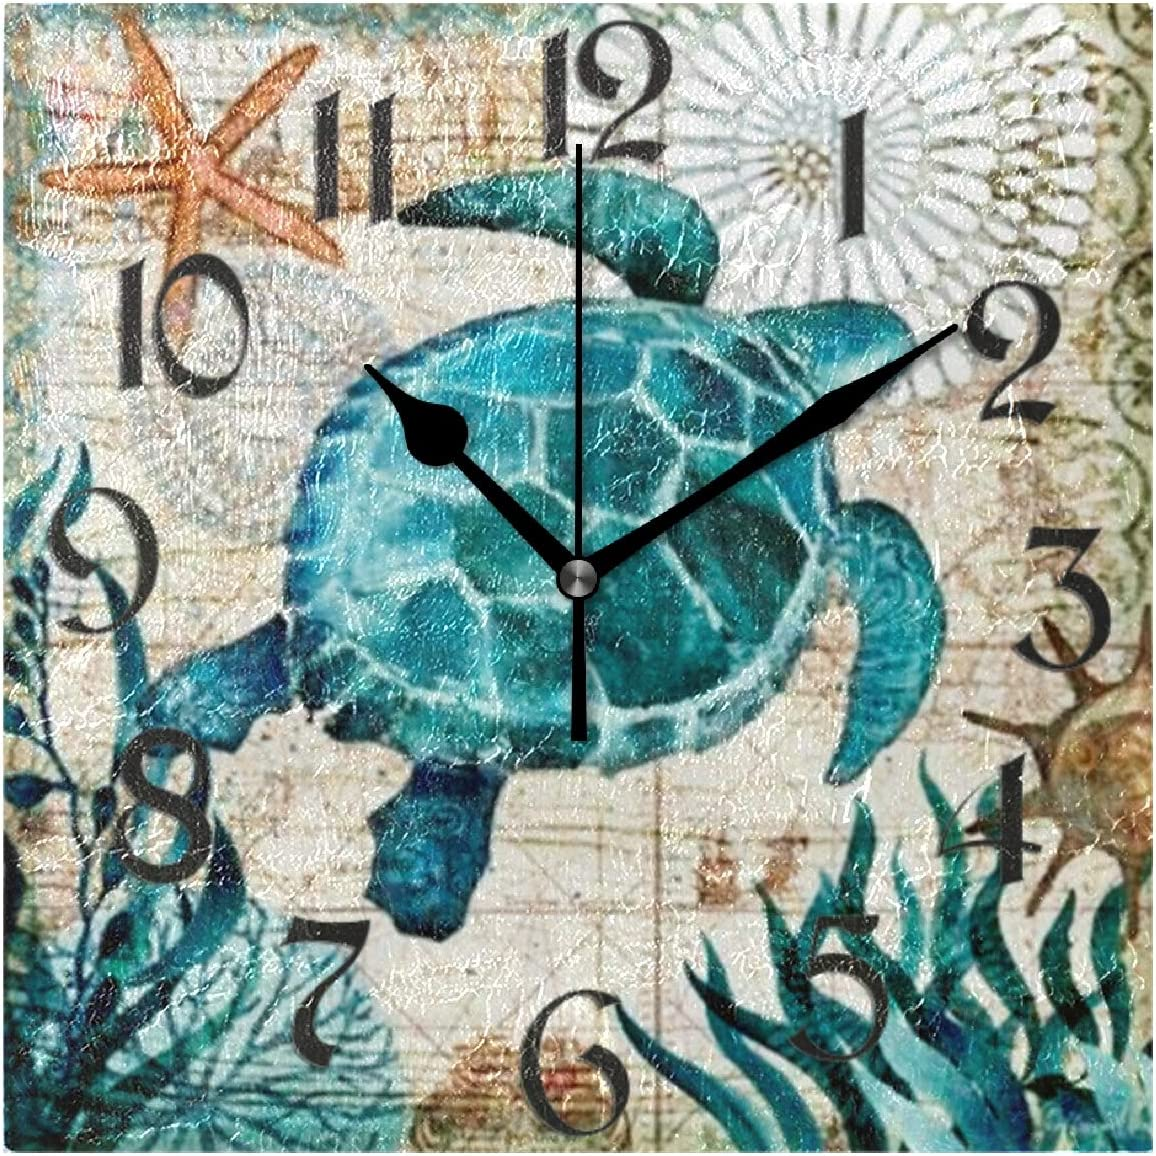 Naanle Vintage Turtle Square Wall Clock Sea Turtle Silent Non Ticking Wall Clocks Battery Operated for Office Home School Decor